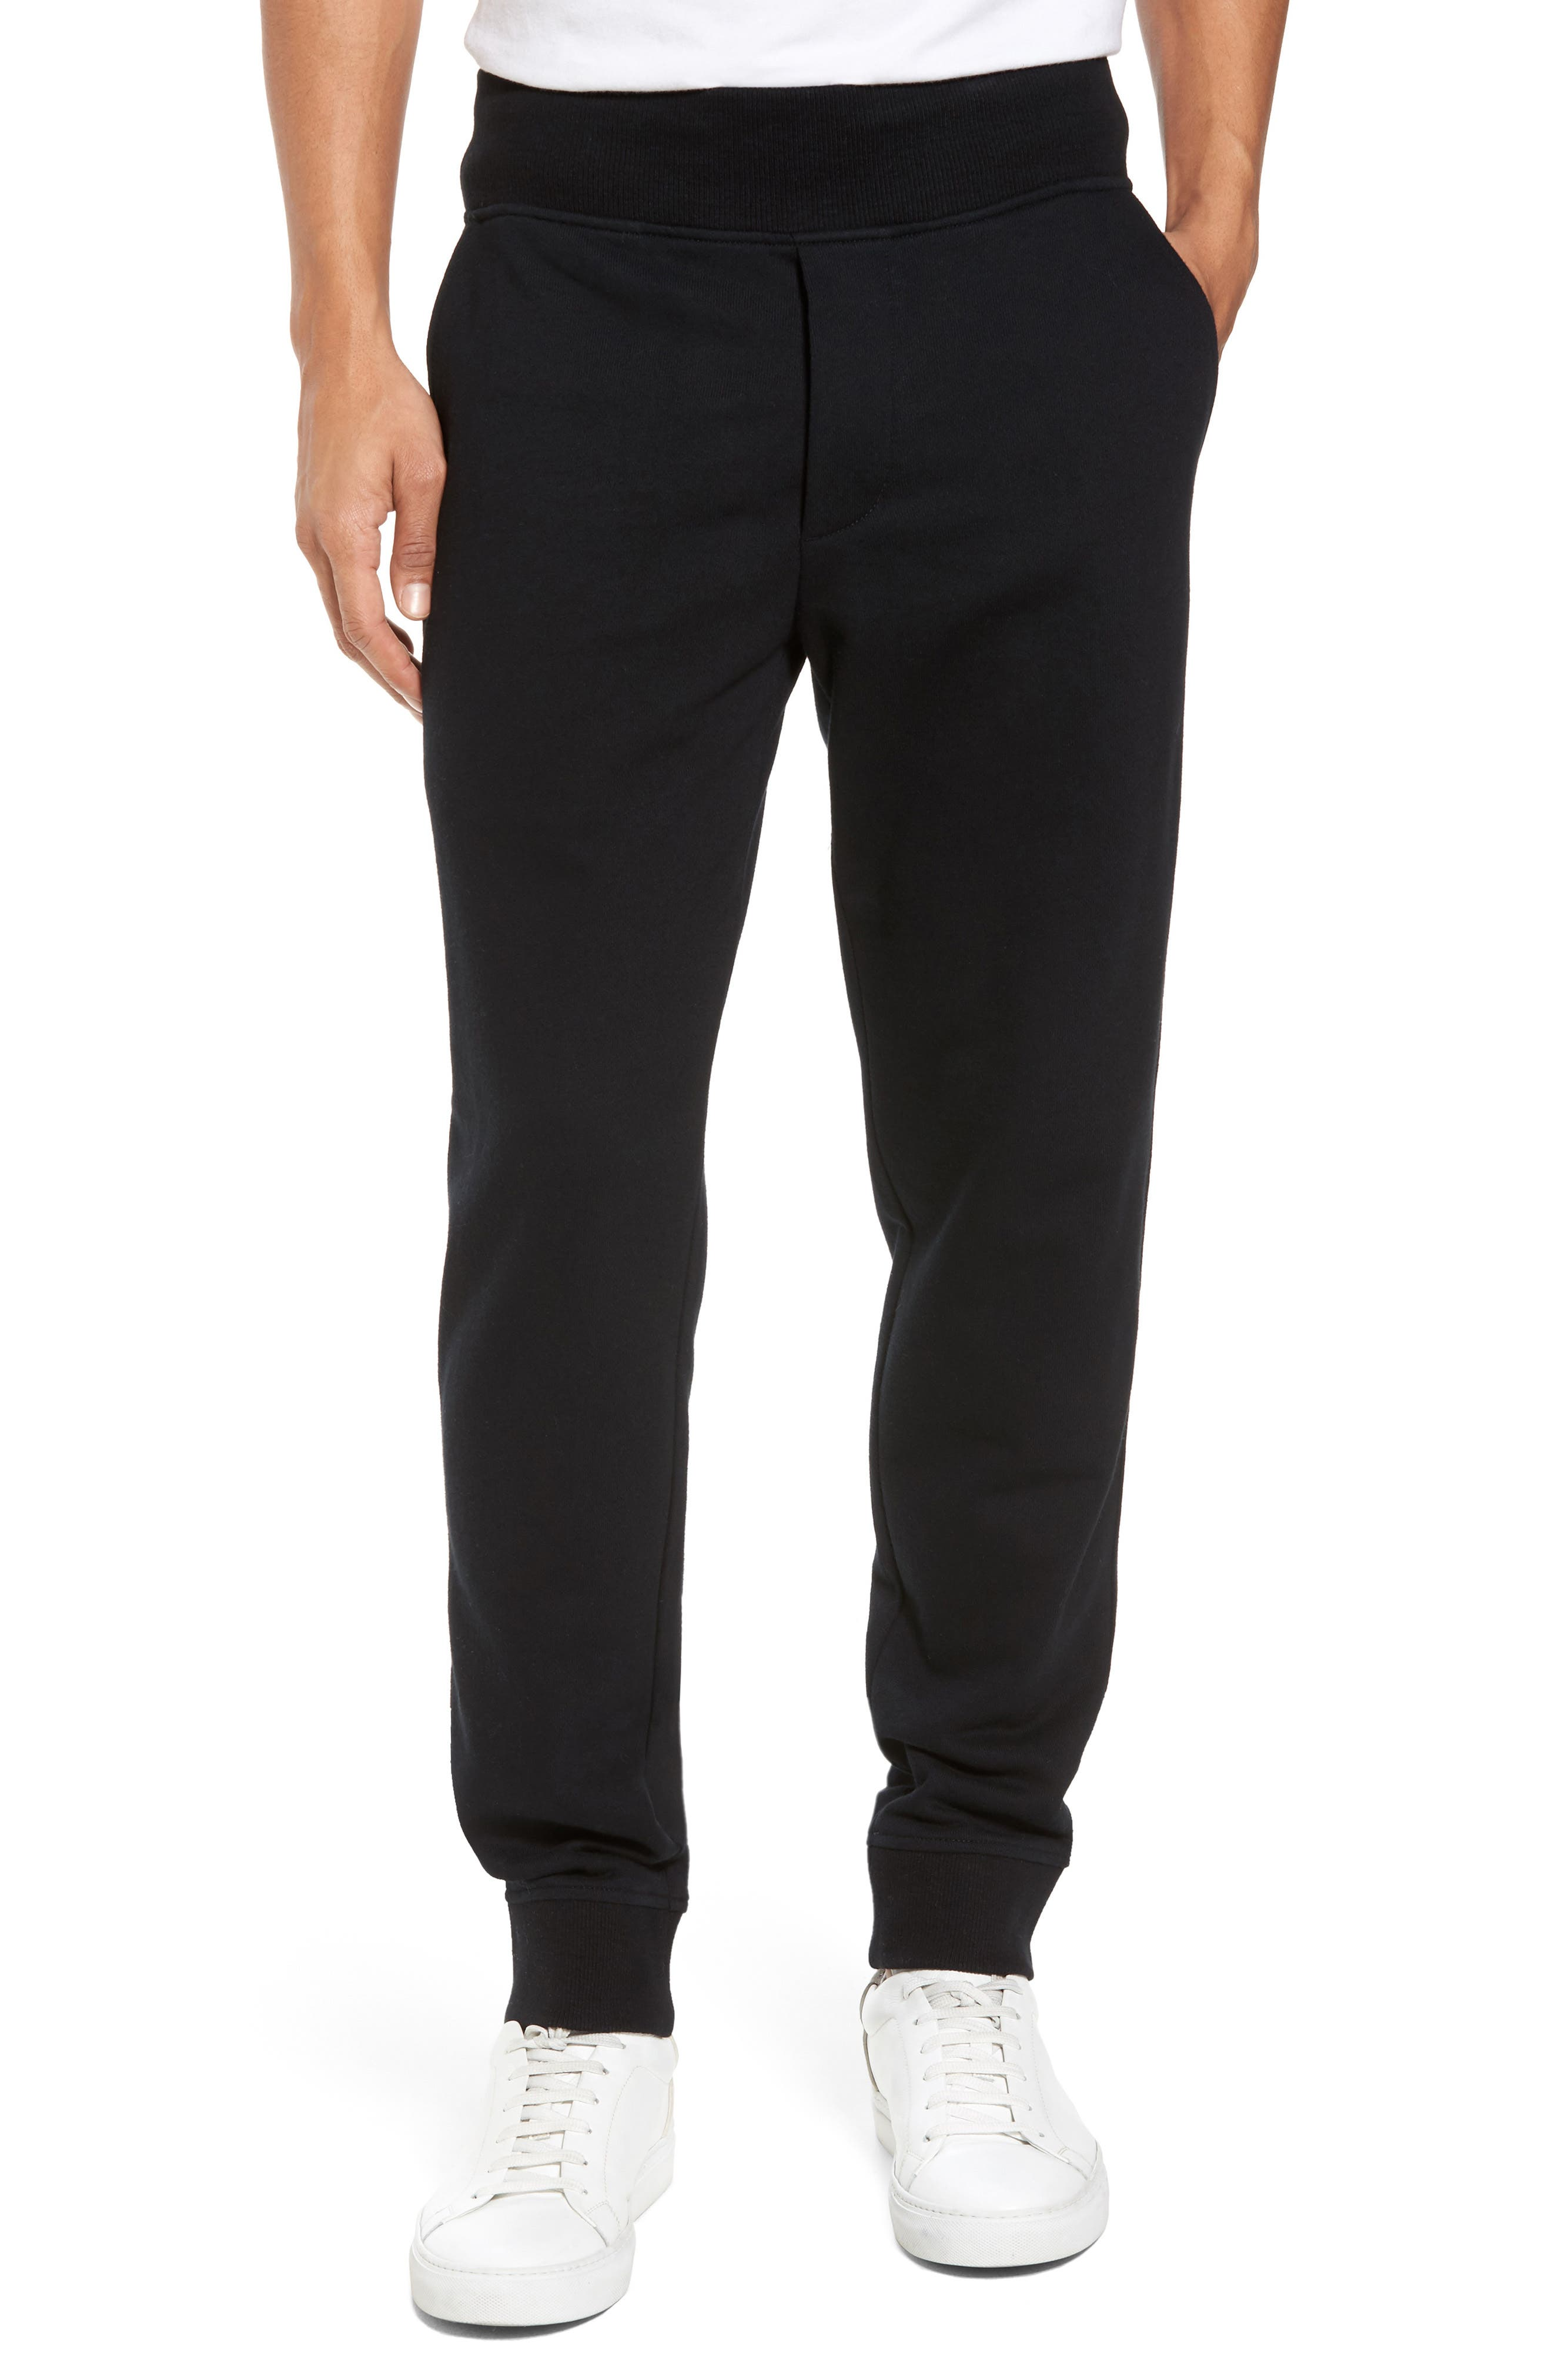 French Terry Regular Fit Sweatpants,                         Main,                         color, Black